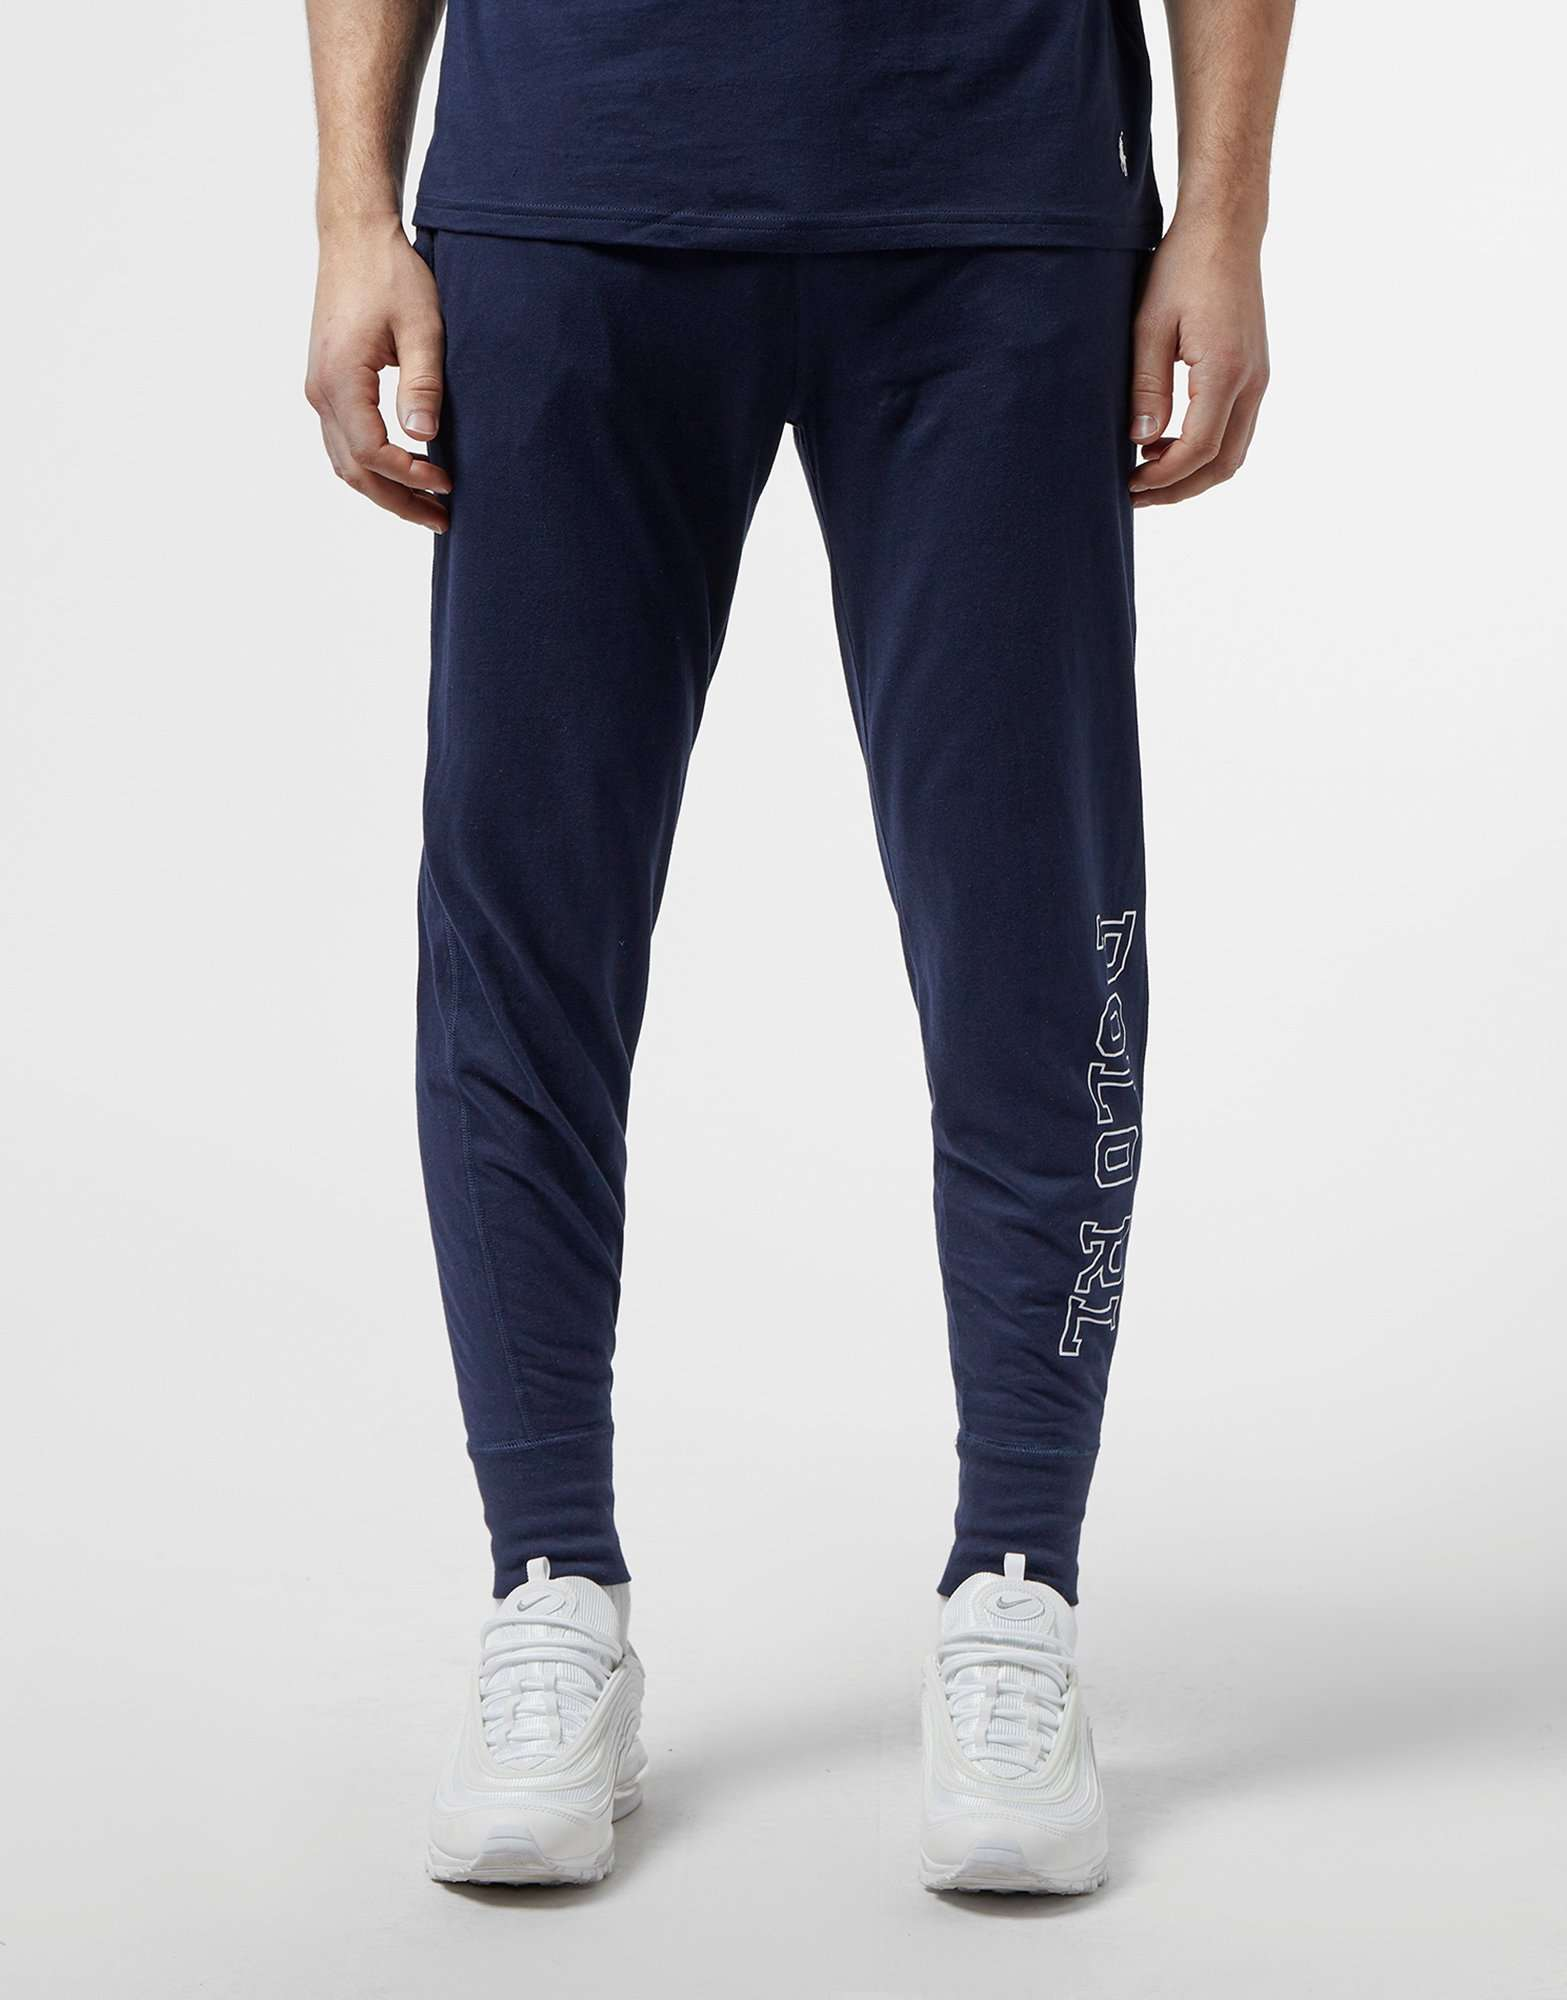 Polo Ralph Lauren Underwear Polo Fleece Pants